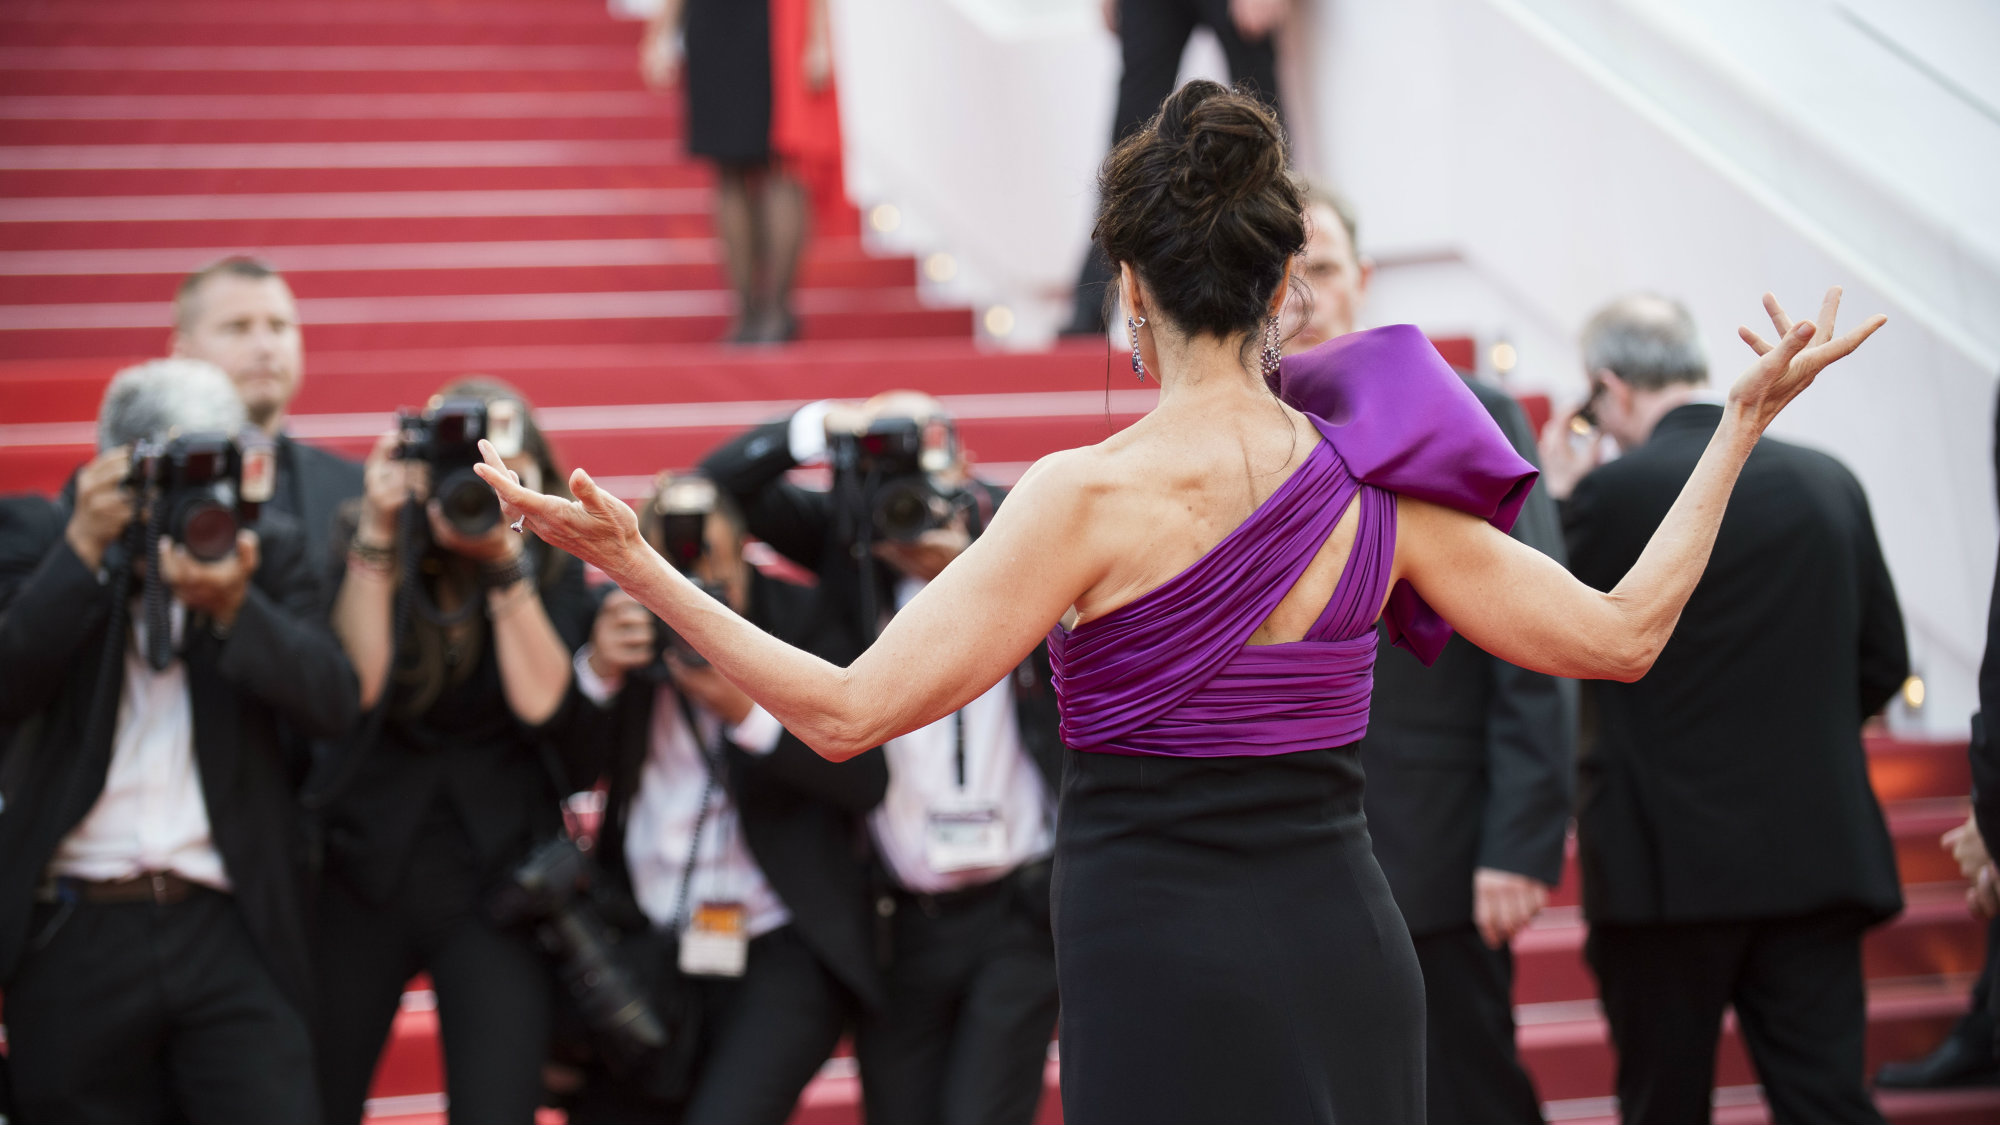 Andie MacDowell poses for photographers upon arrival at the screening of the film The Meyerowitz Stories at the 70th international film festival, Cannes, southern France, Sunday, May 21, 2017.